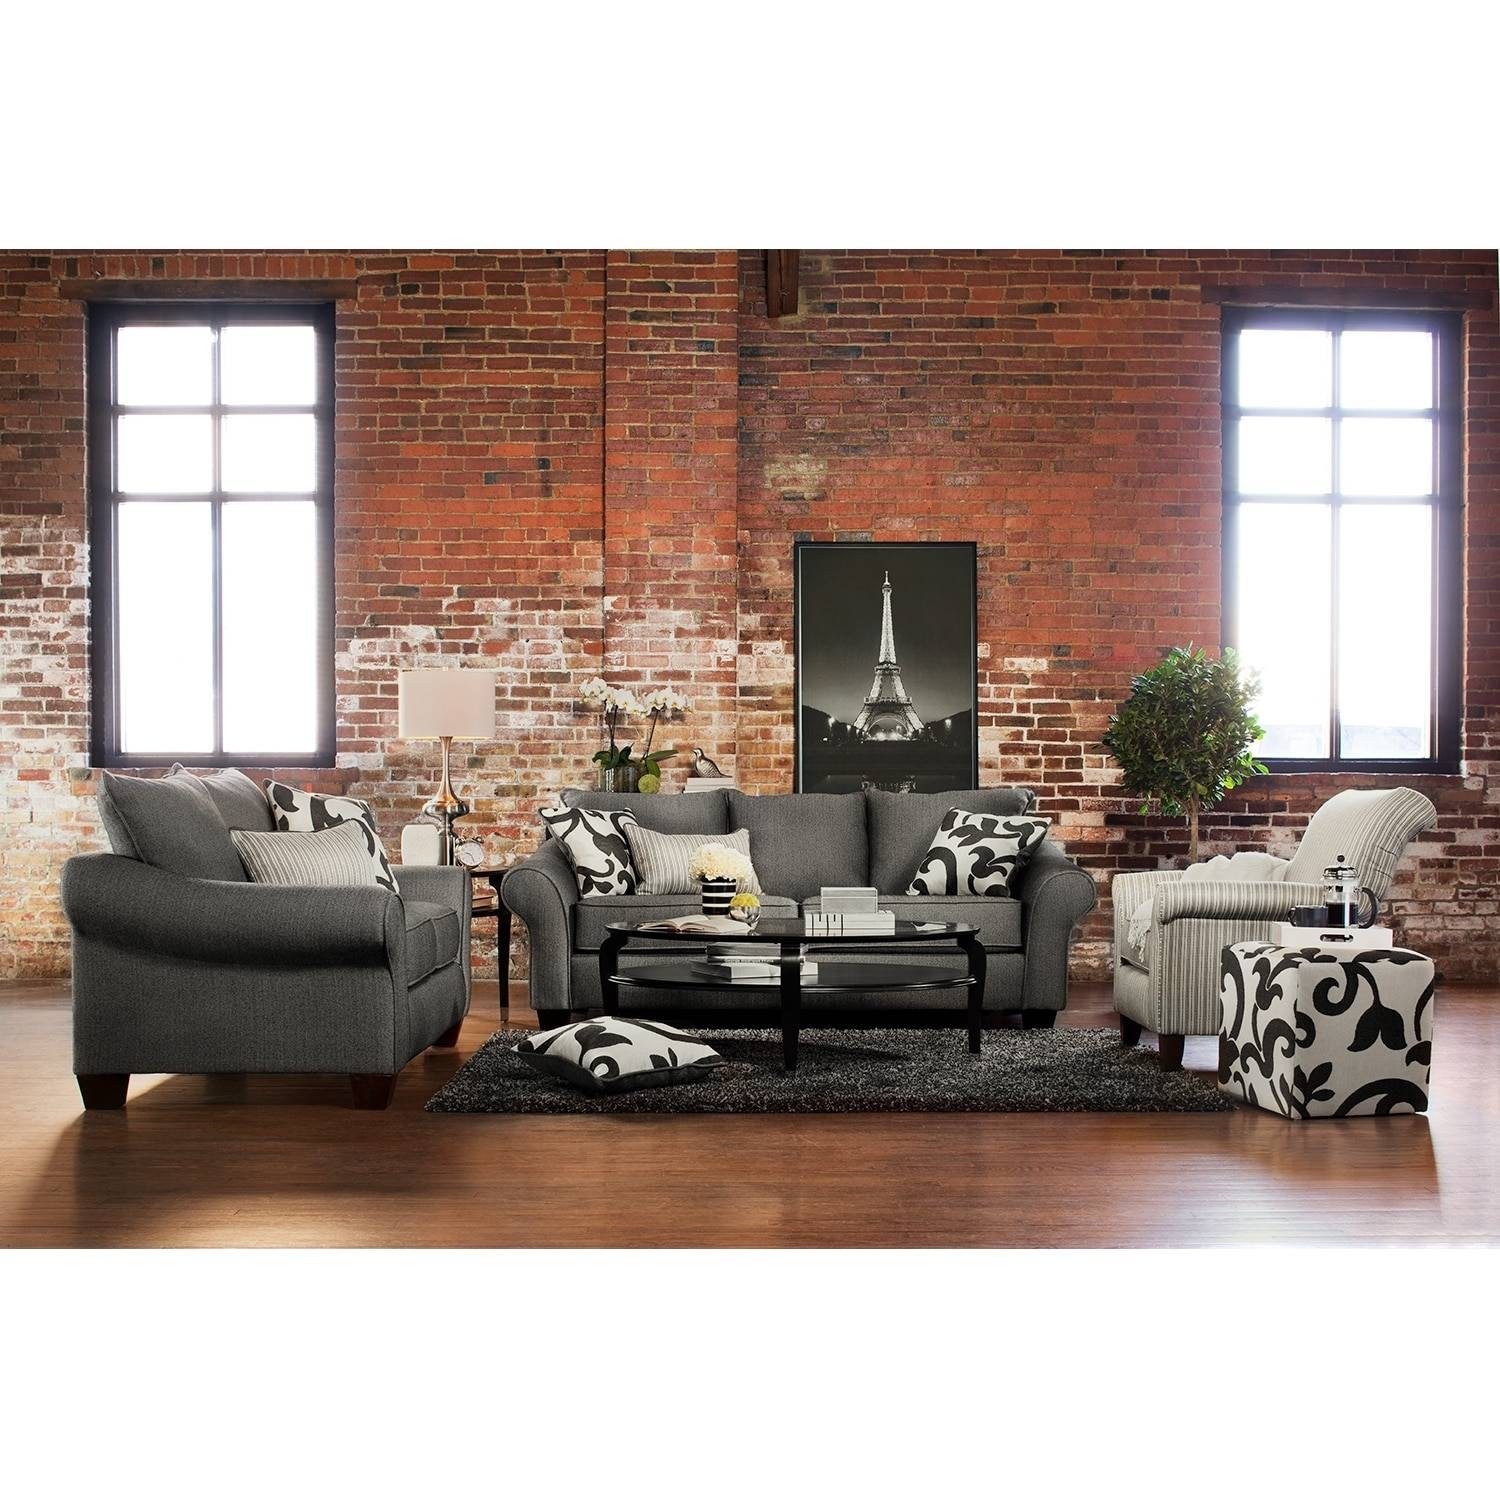 Colette Sofa And Accent Chair Set - Gray | Value City Furniture with regard to Sofa and Accent Chair Set (Image 14 of 30)